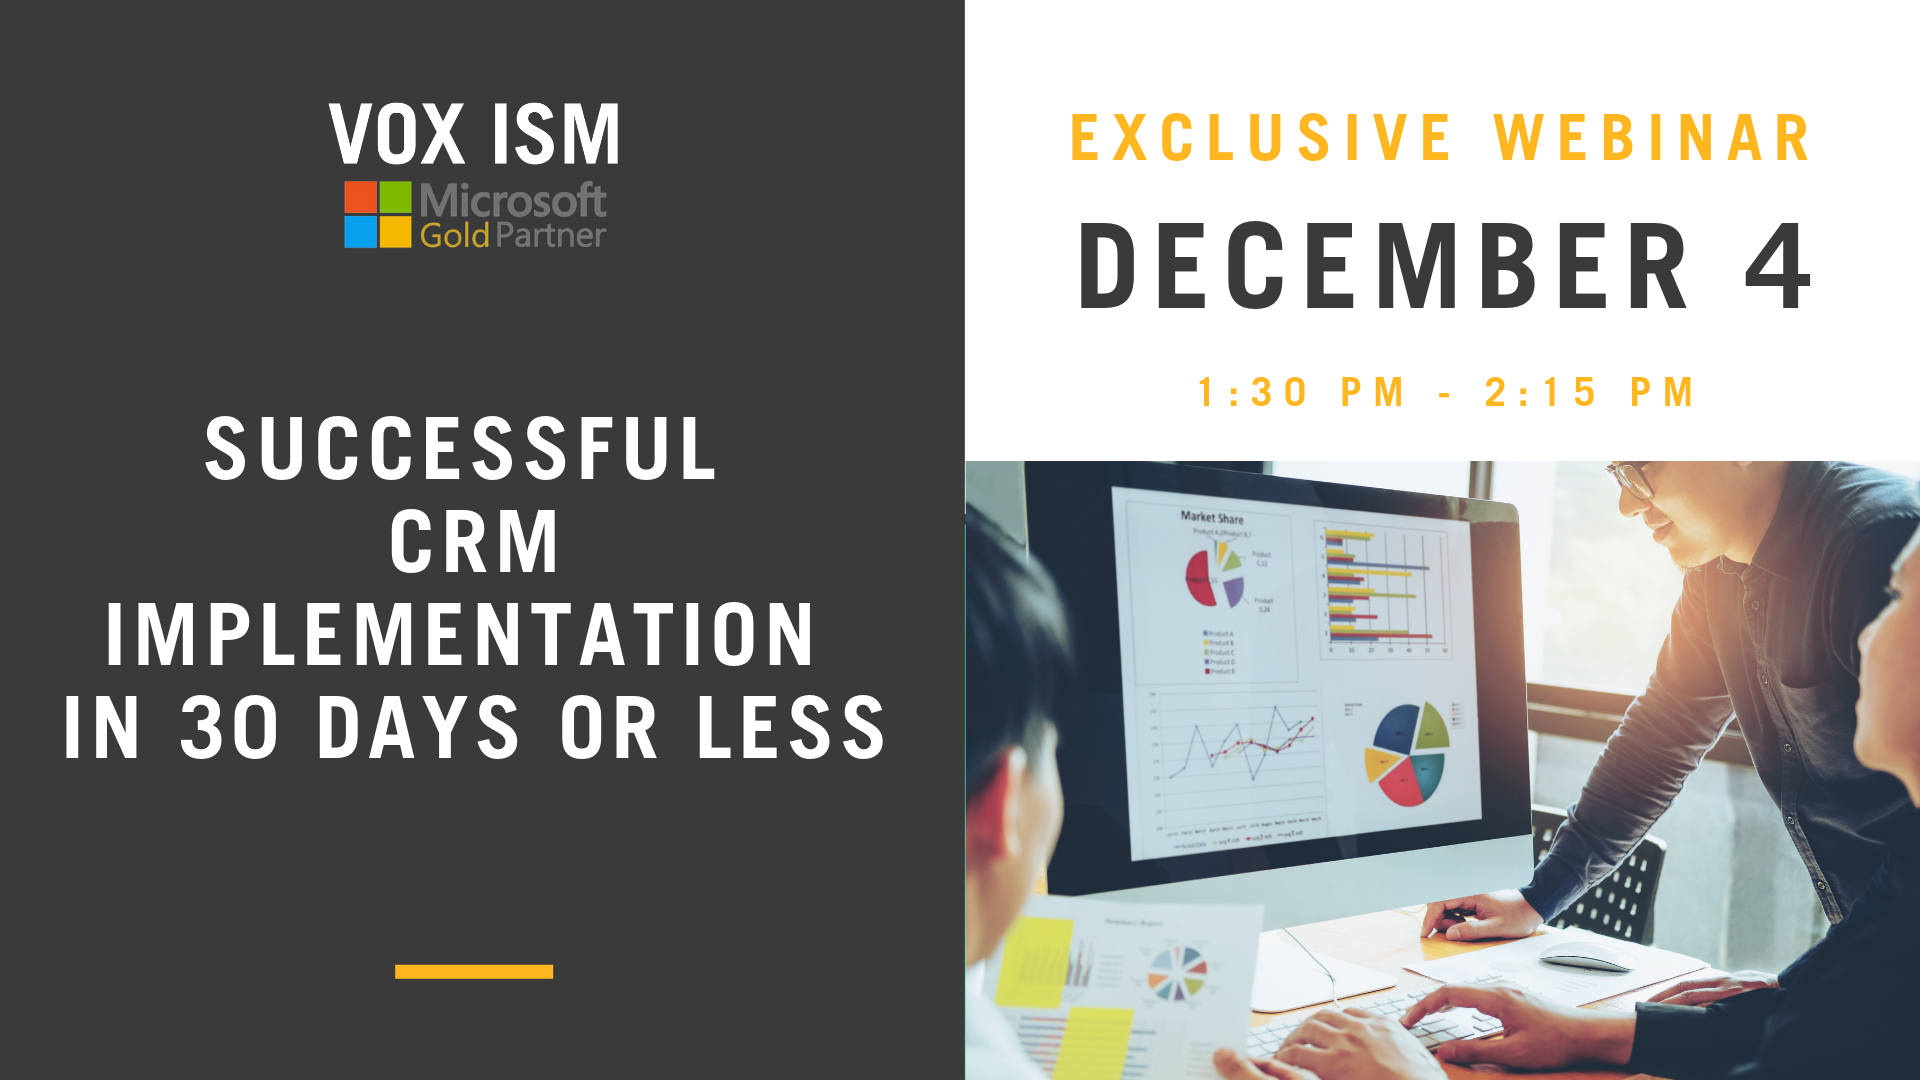 Successful CRM Implementation in 30 days or less - December 4 - Webinar - VOX ISM